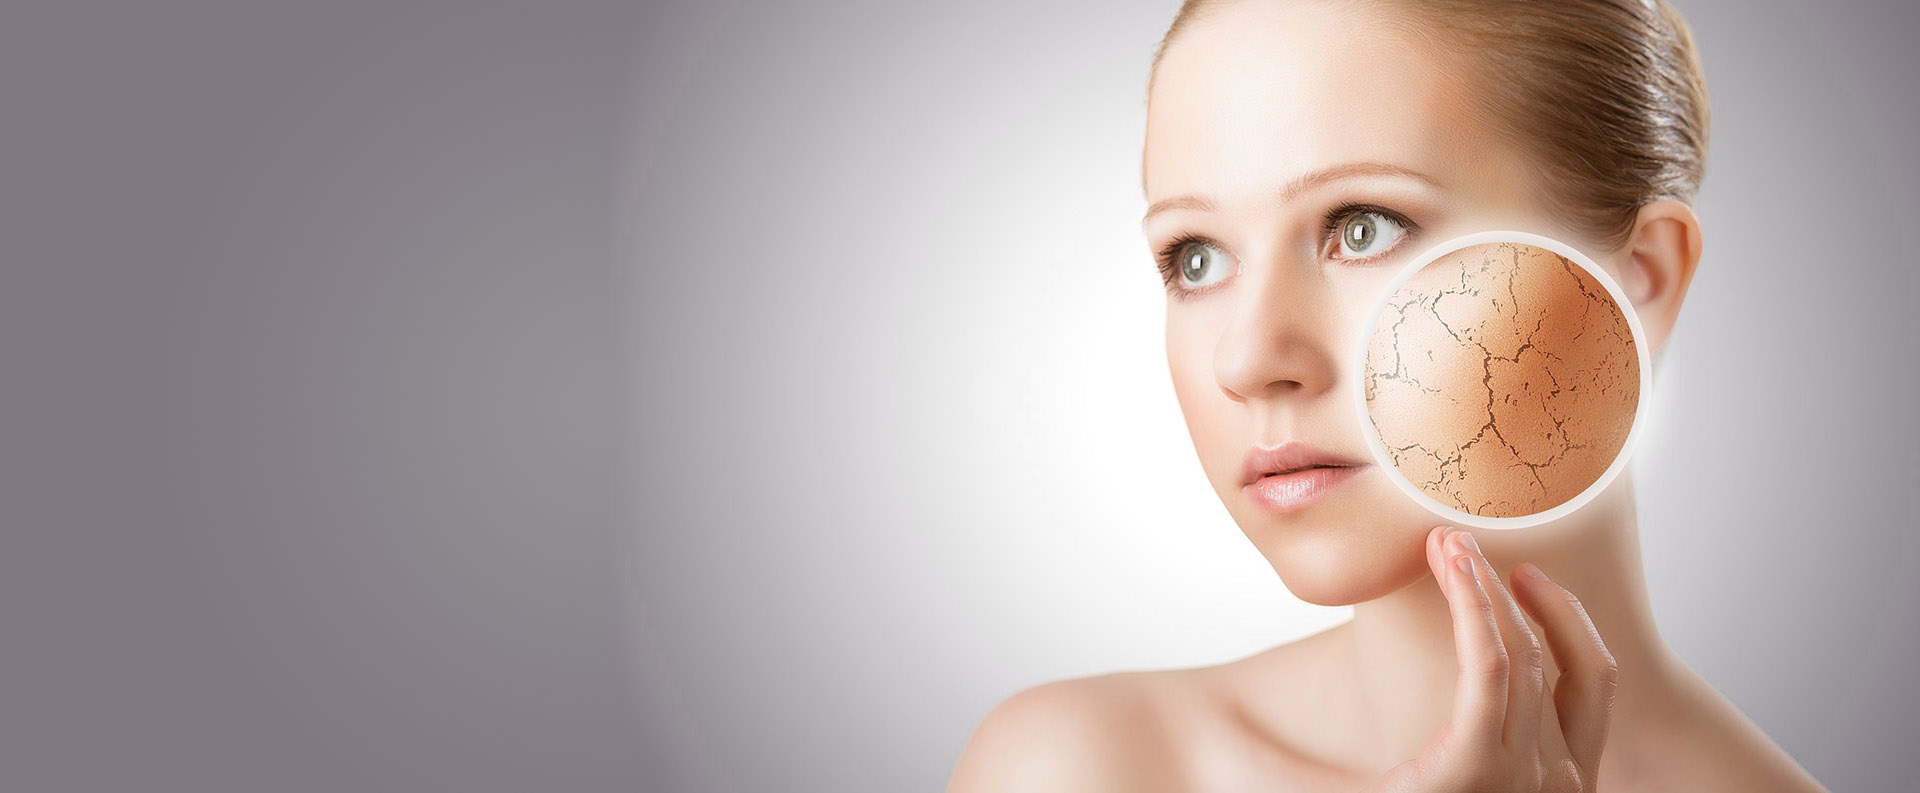 Escape skin stress - advices from MiracleFace MedSpa